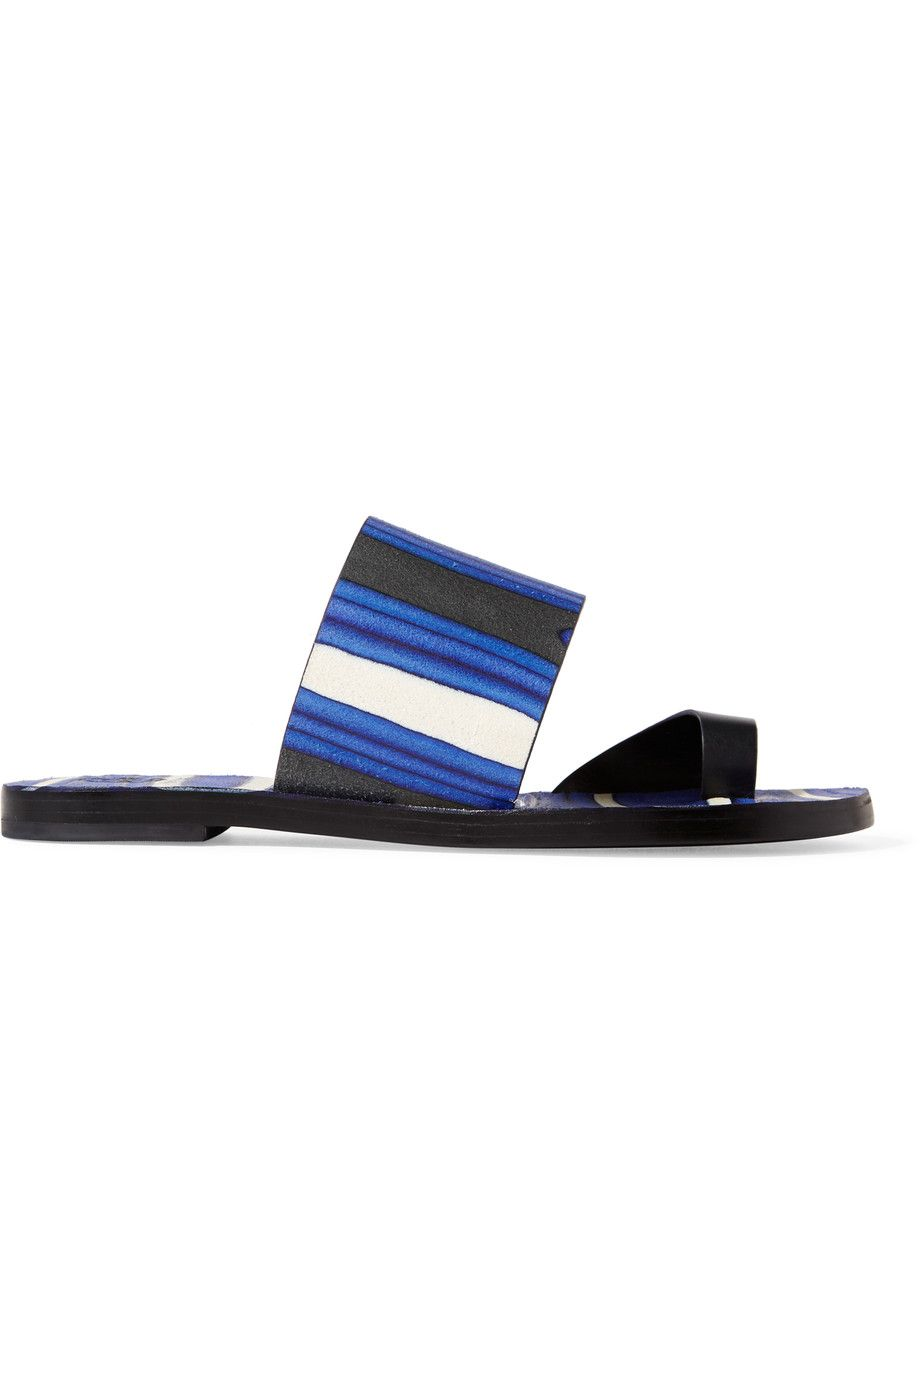 TORY BURCH Kempner Printed Leather Sandals. #toryburch #shoes #sandals